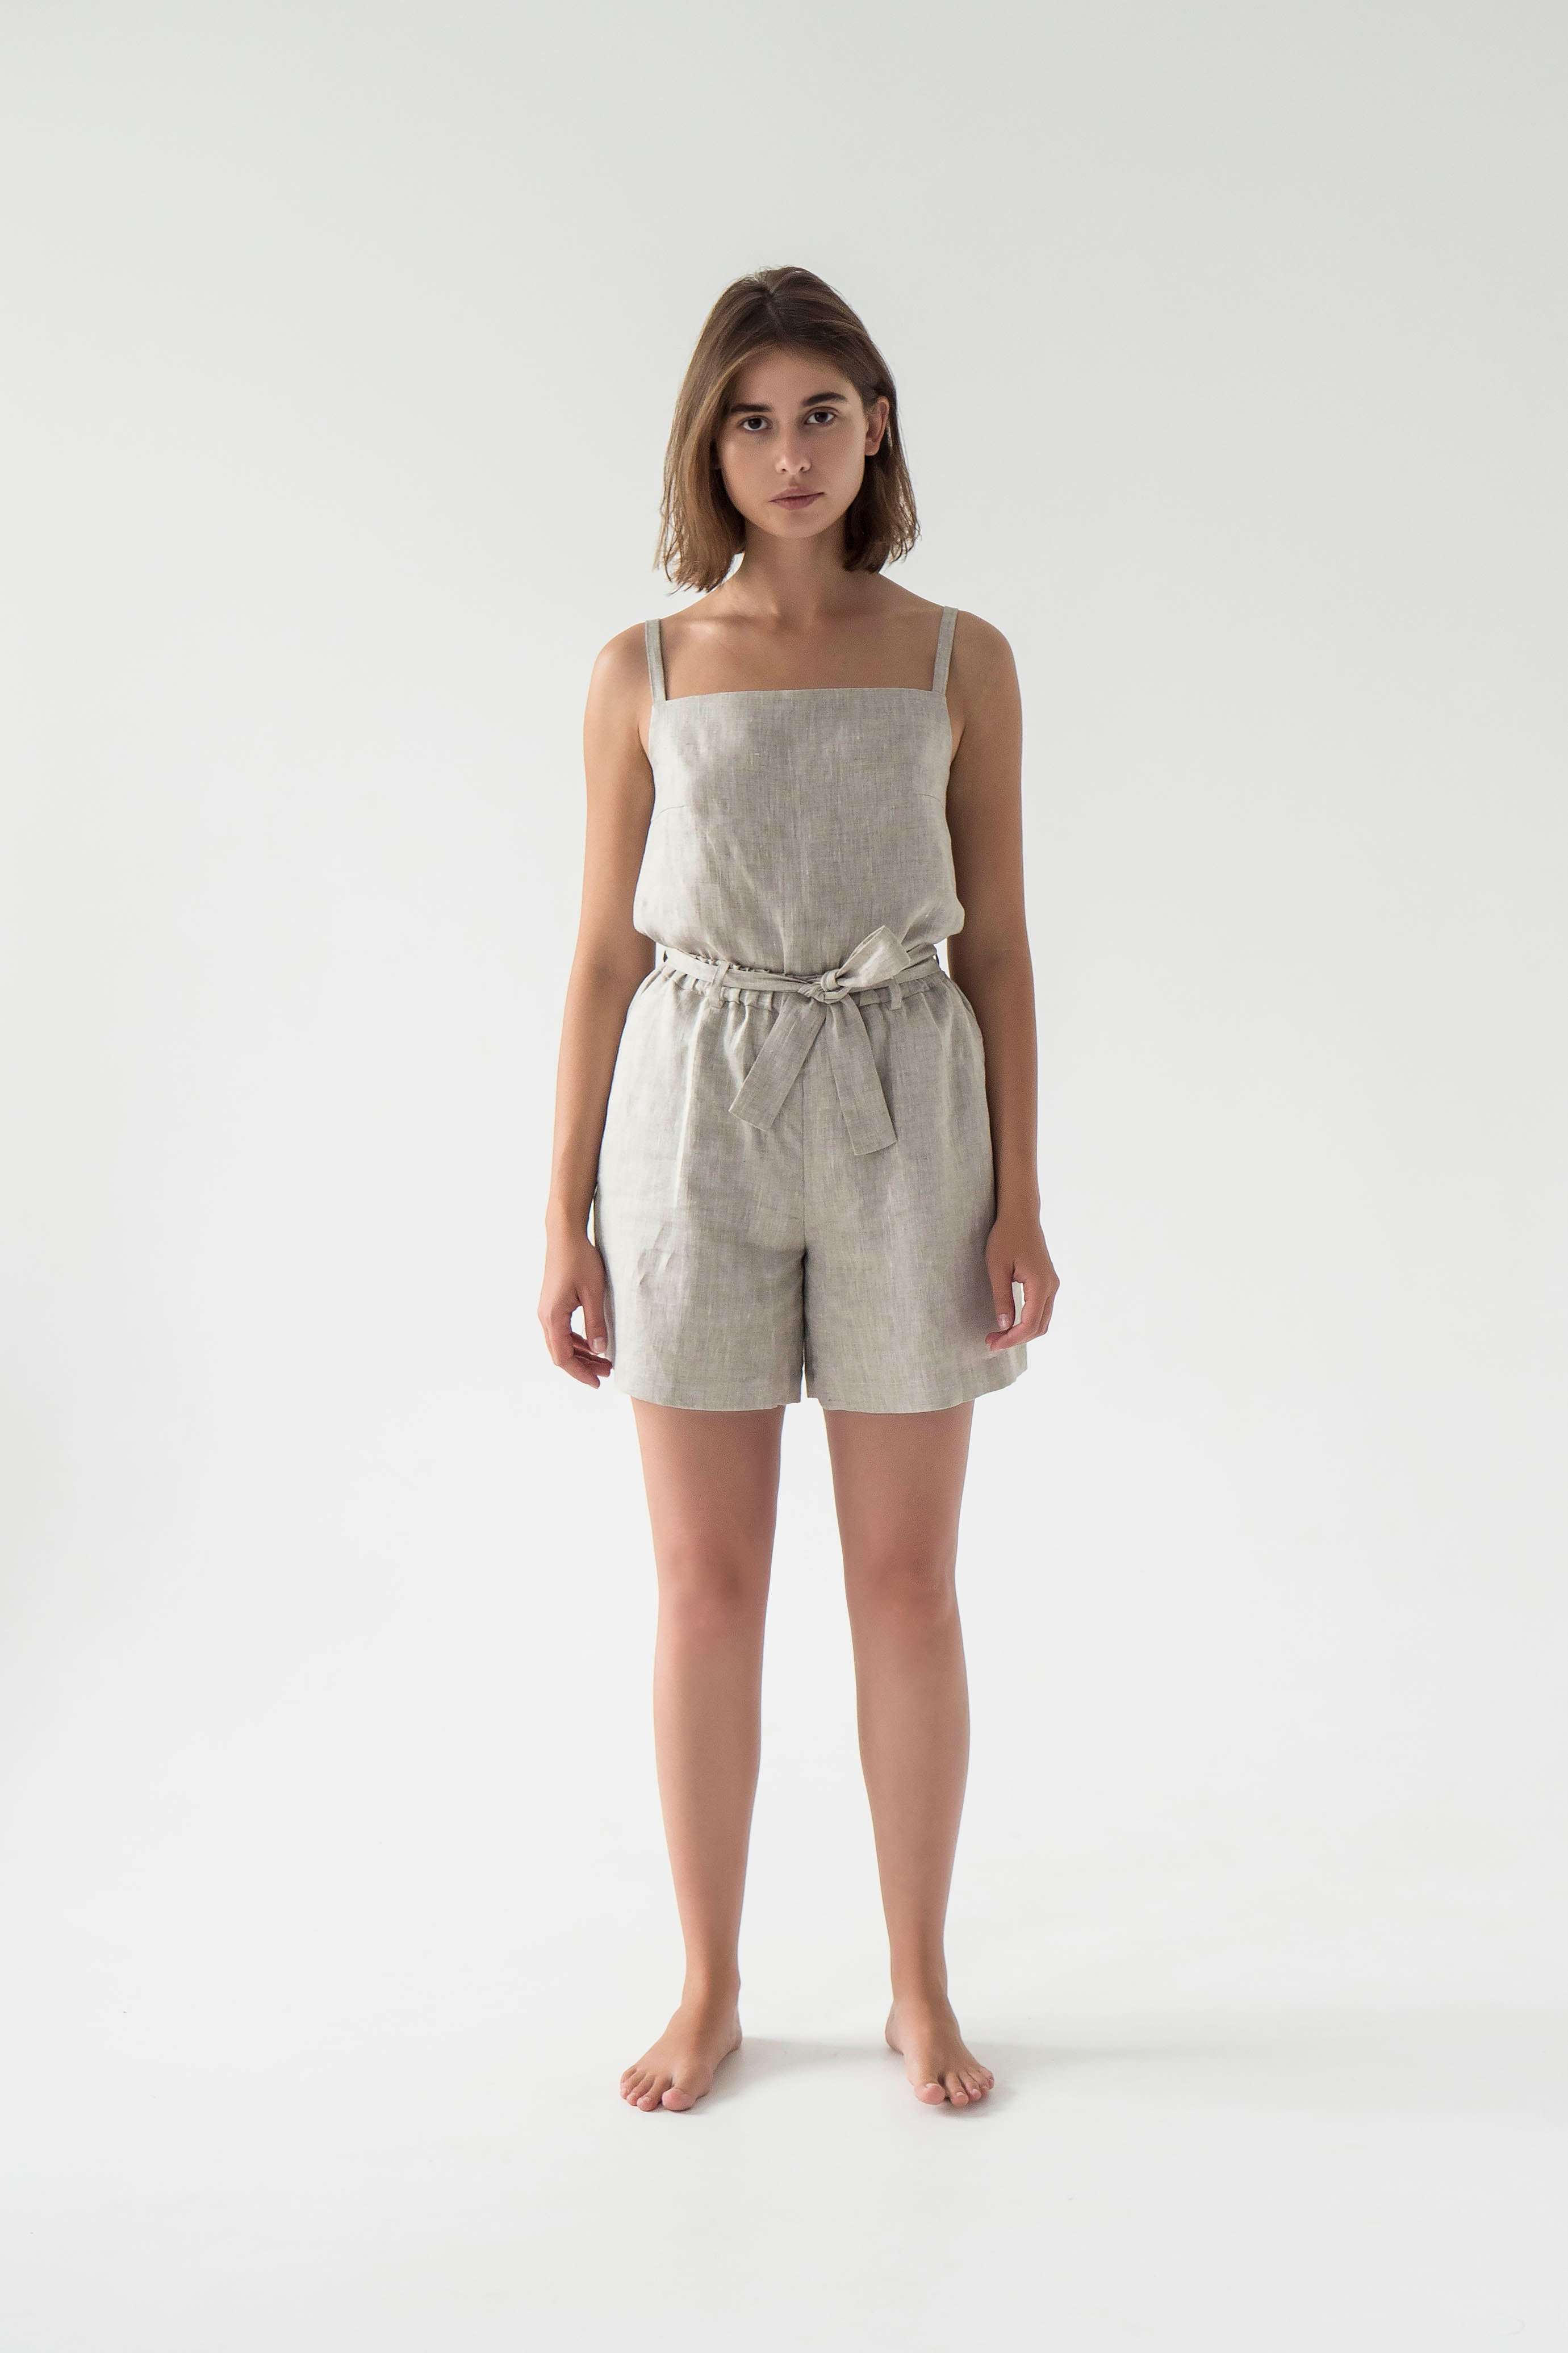 Cami top and shorts linen set